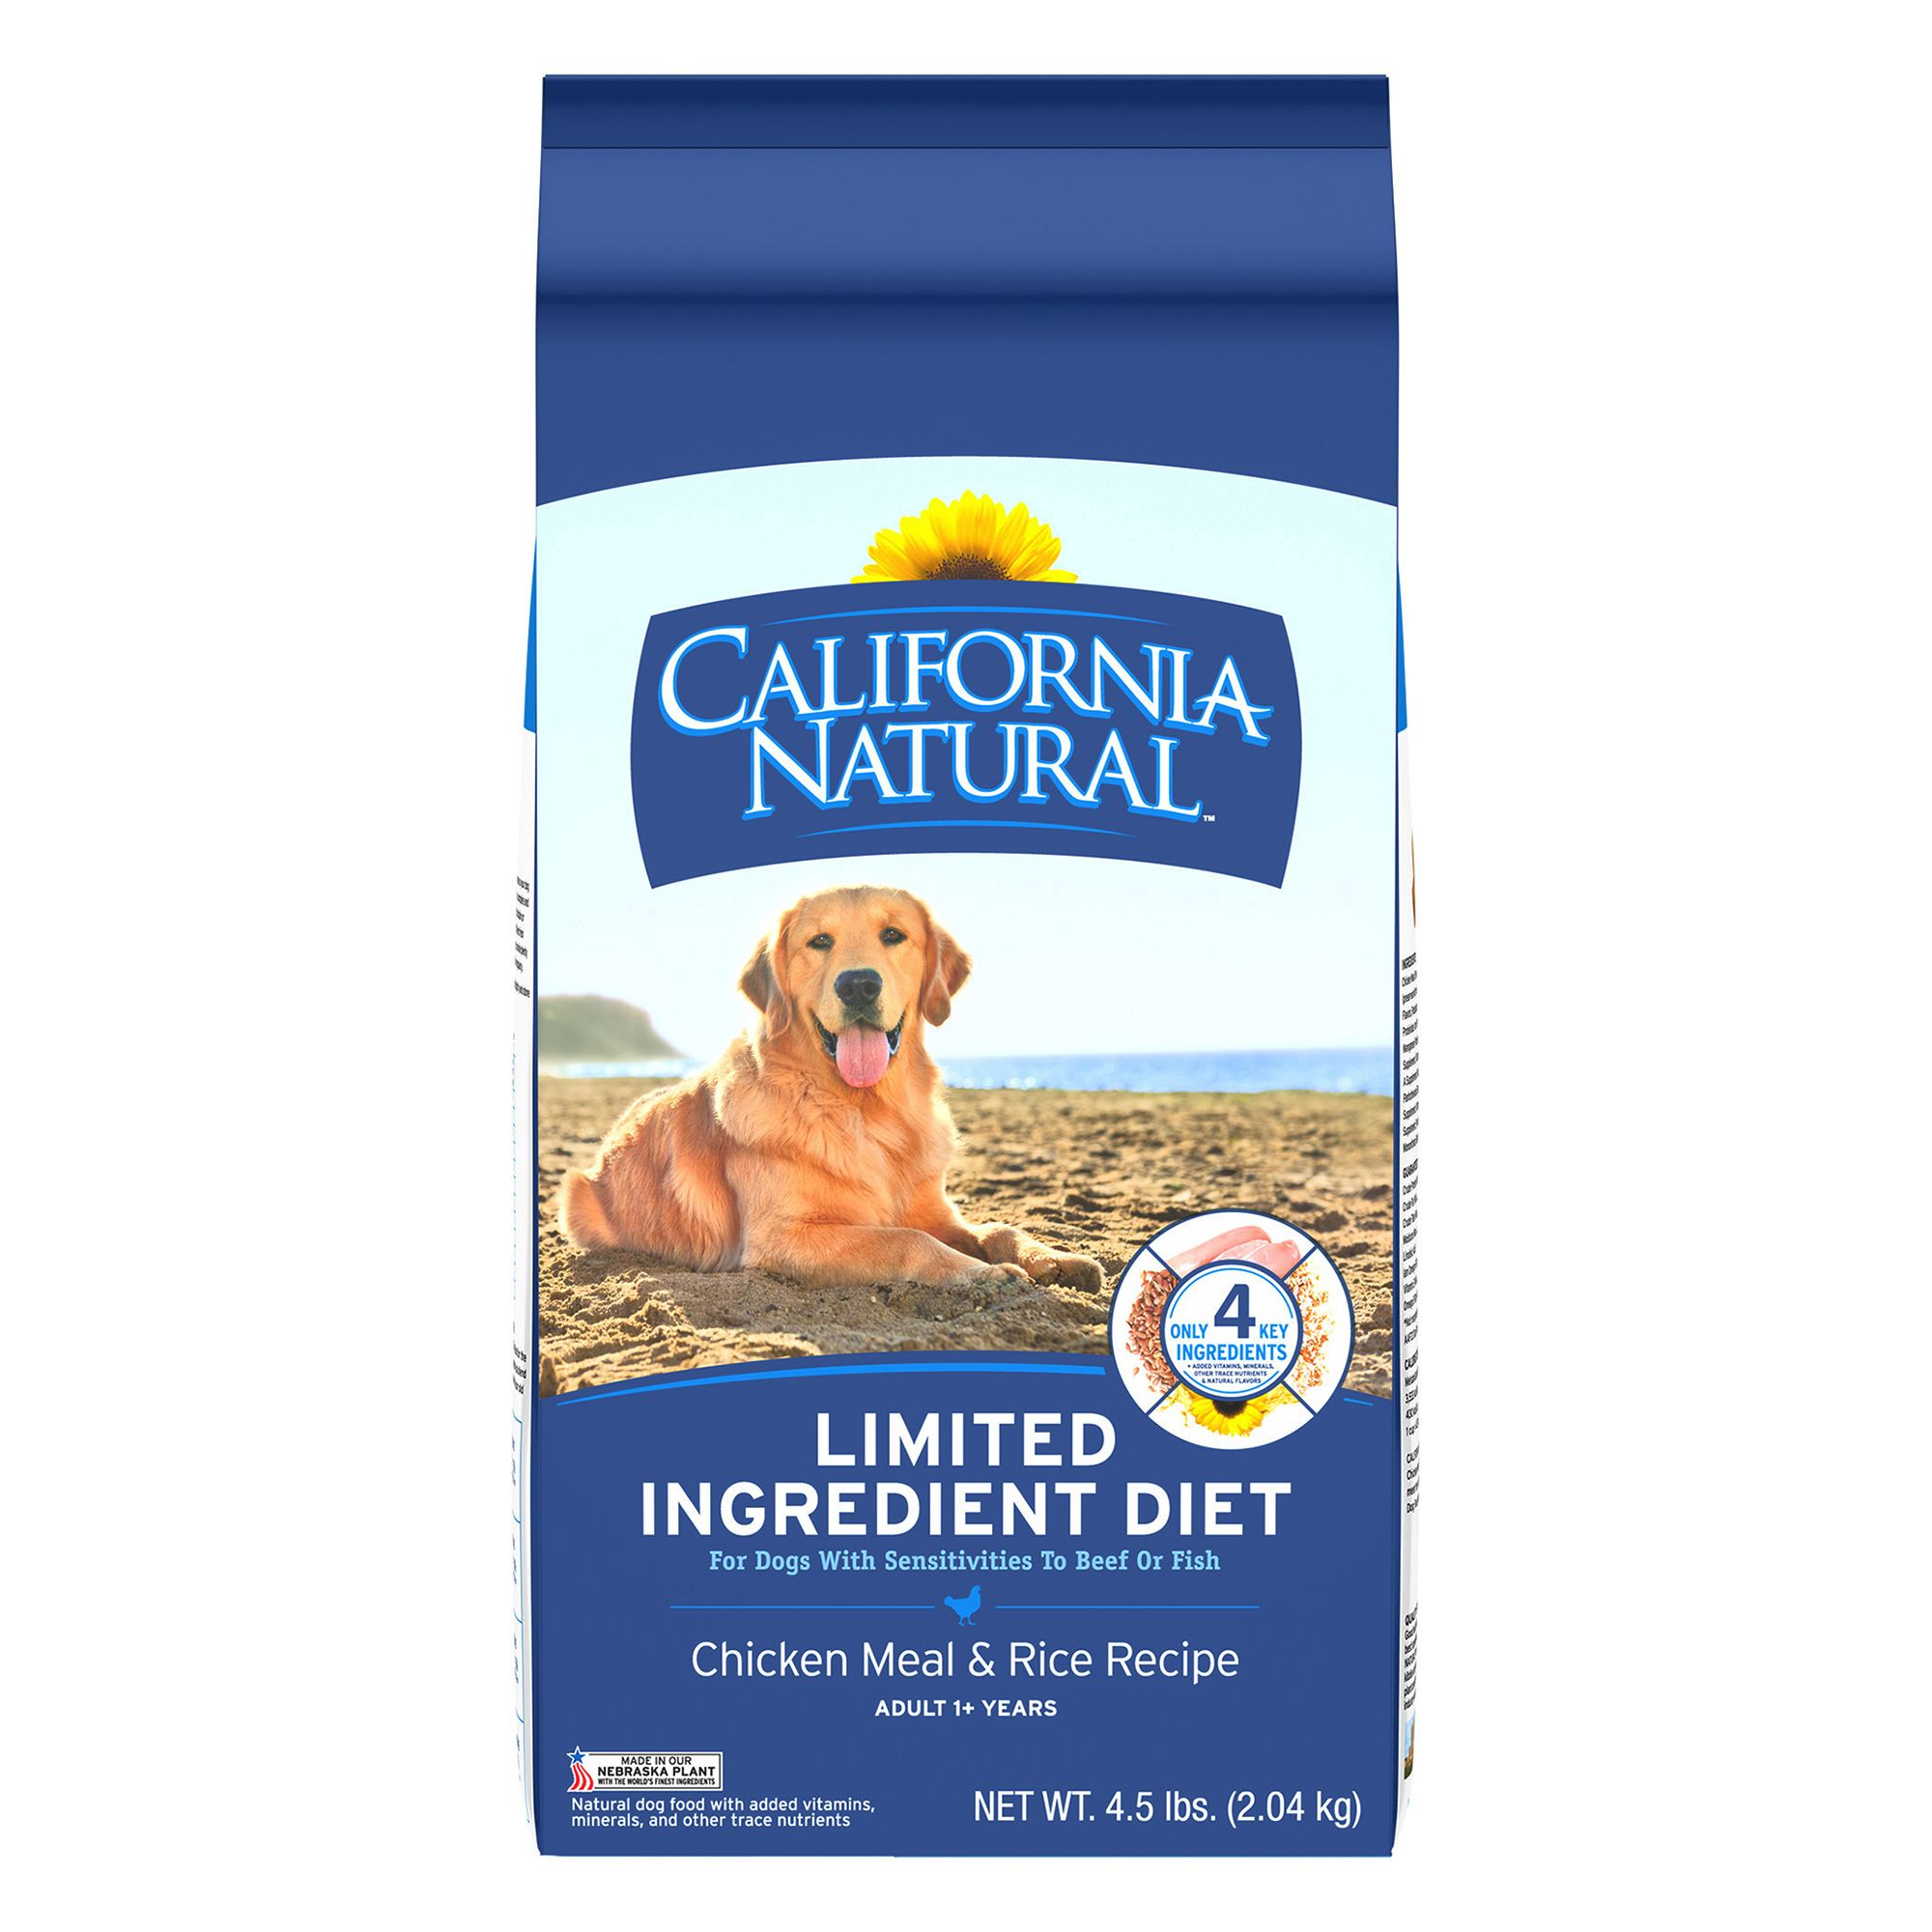 California Natural Limited Ingredient Diet Dog Food Natural Chicken Meal And Rice Size 4.5 Lb